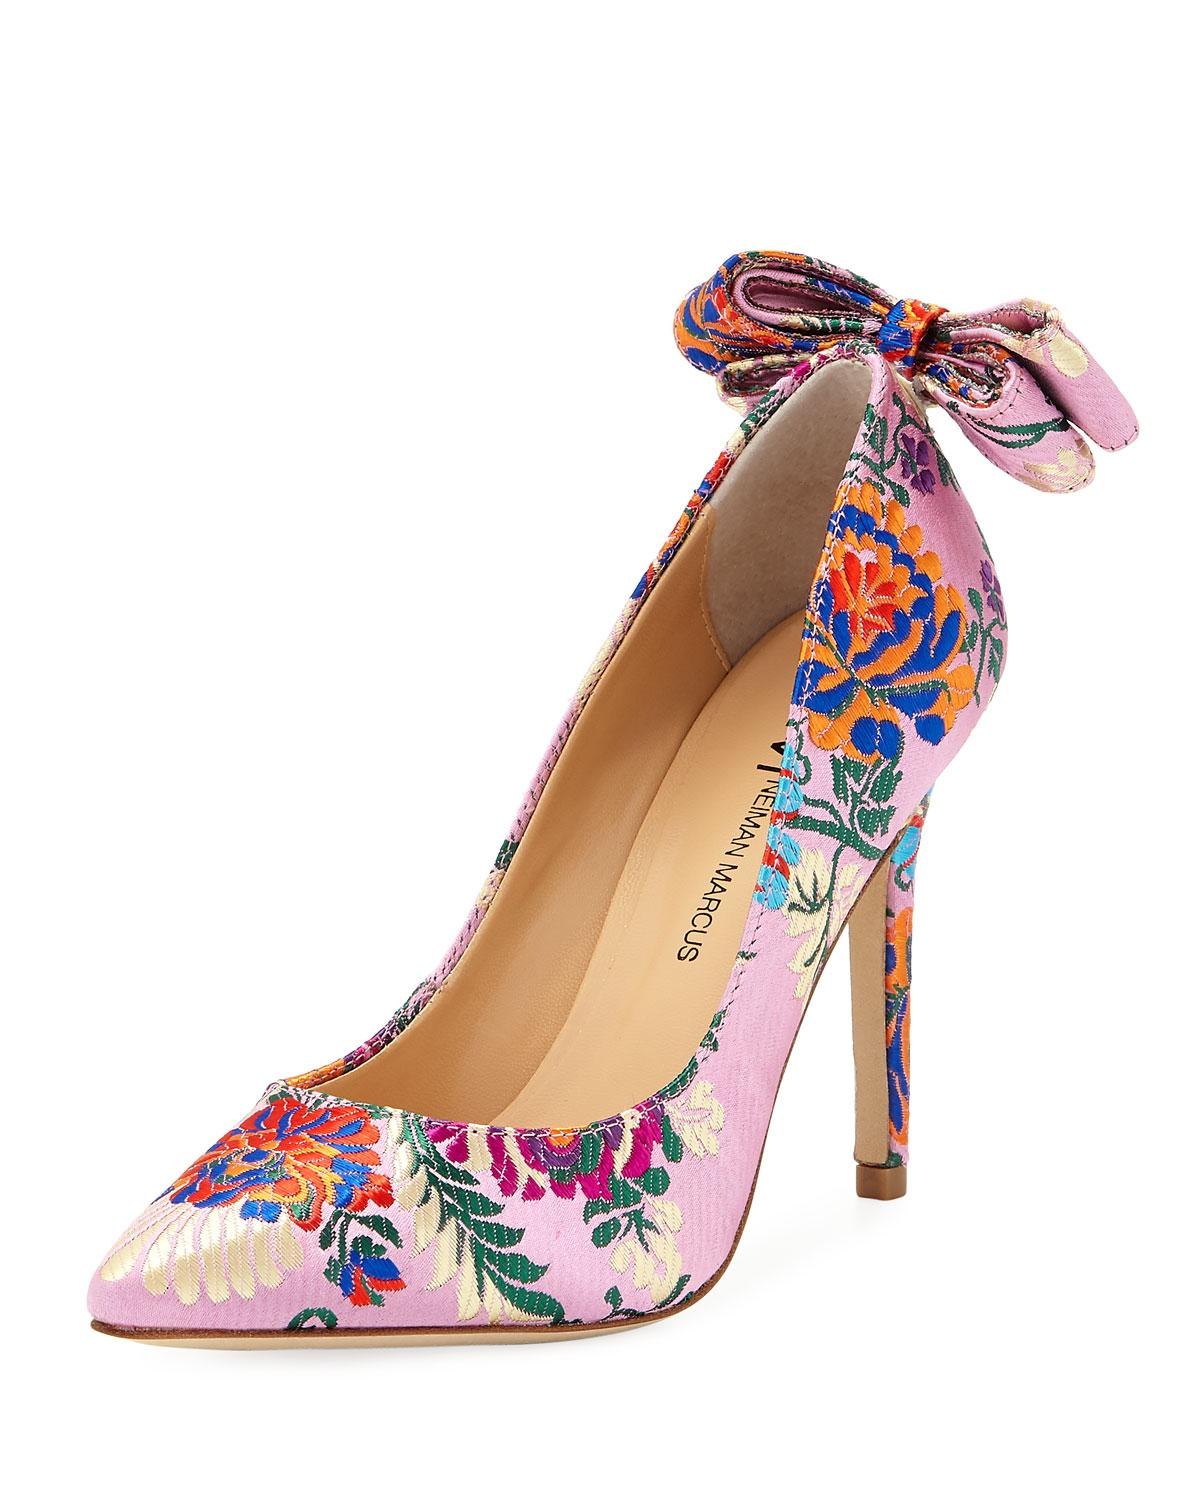 2305638d630 Lyst - Neiman Marcus Verity Floral-brocade Bow-back Pumps in Pink